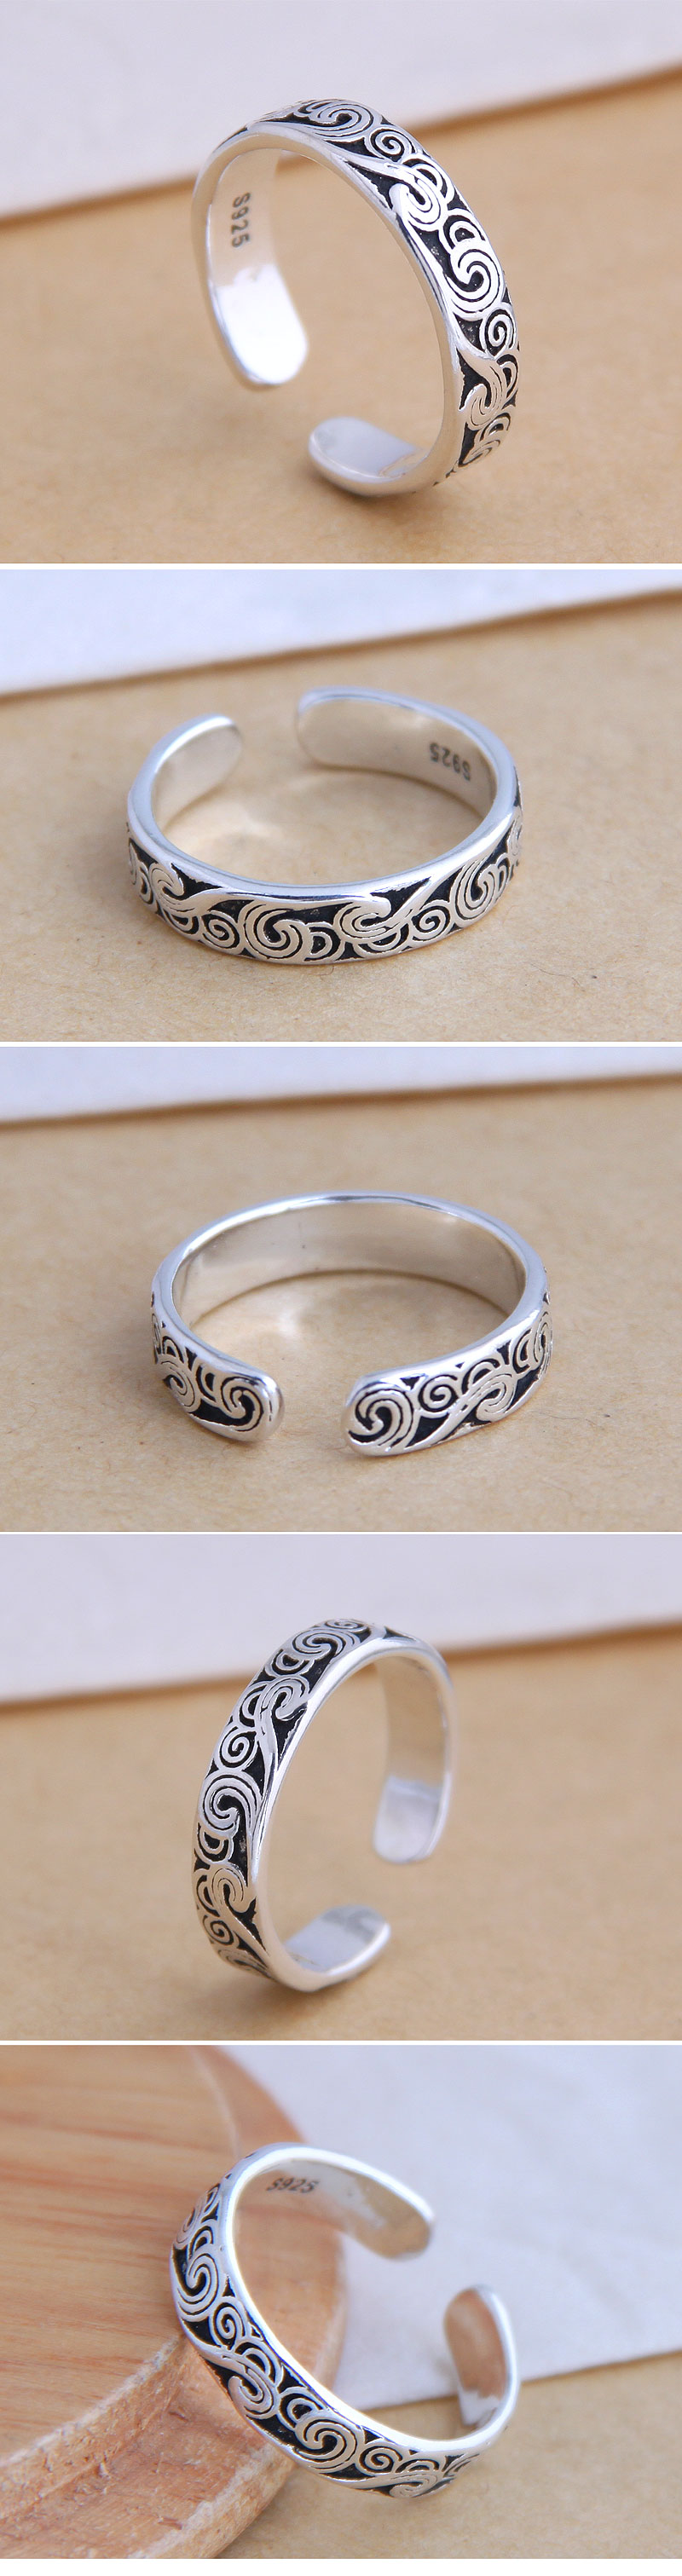 Fashion jewelry fashion vintage pattern open ring simple ring wholesale NHSC200902